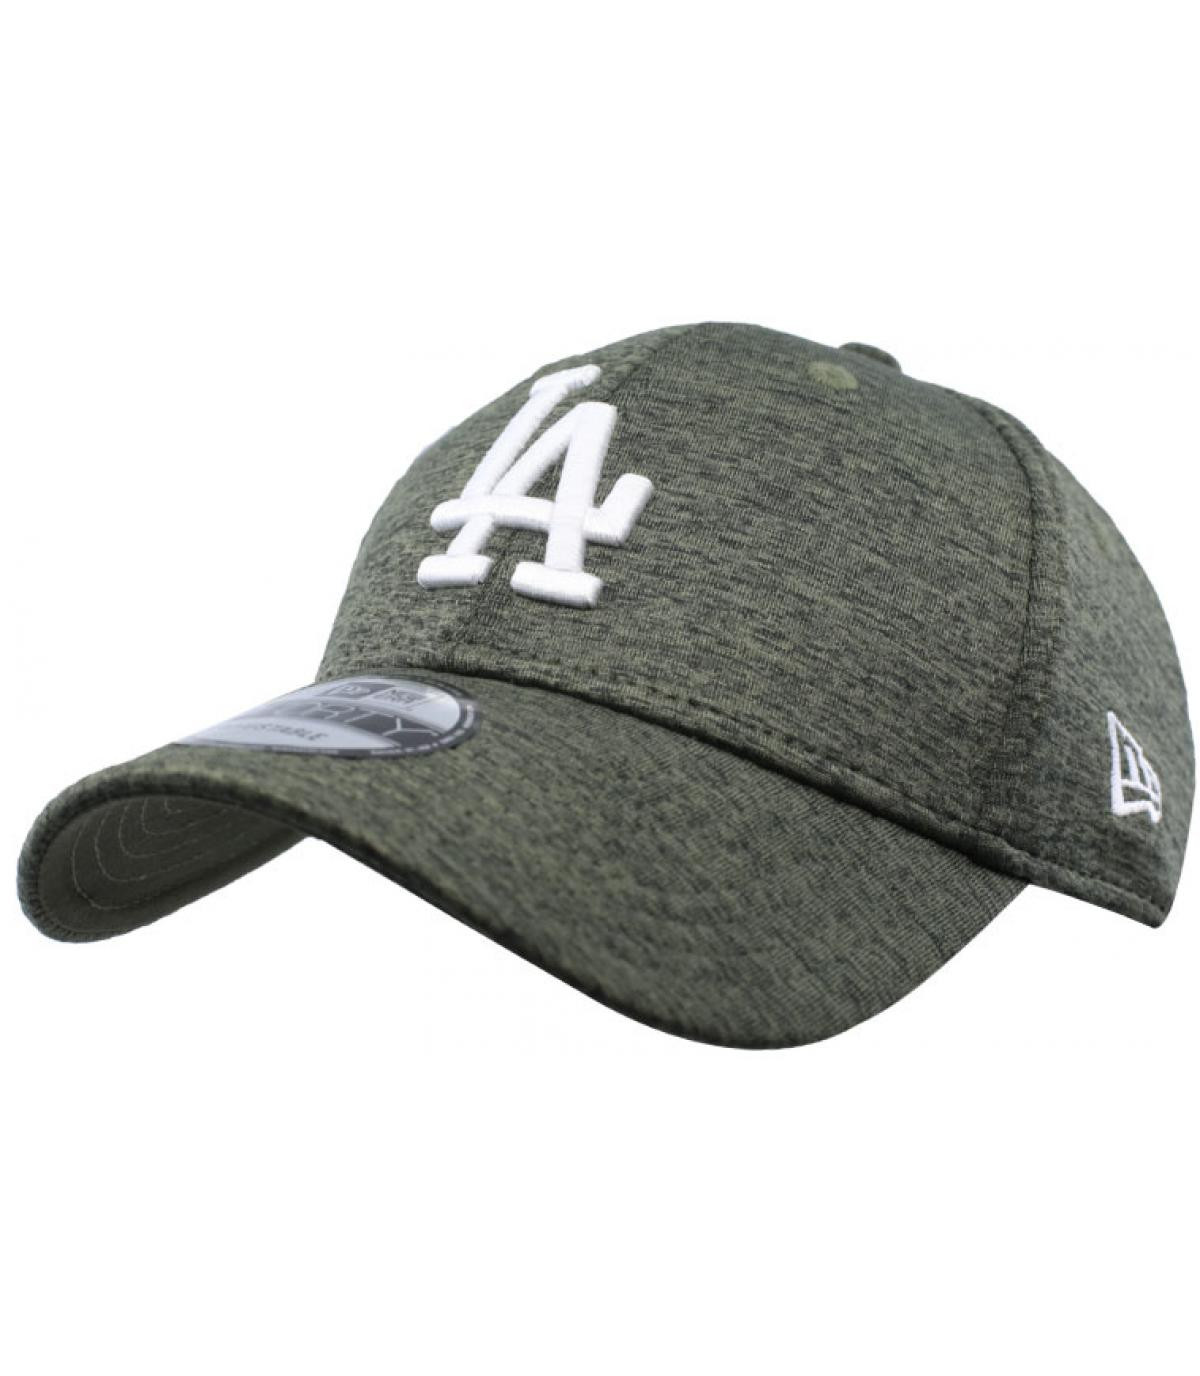 Details Cap LA Dryswitch Jersey 9Forty olive white - Abbildung 2